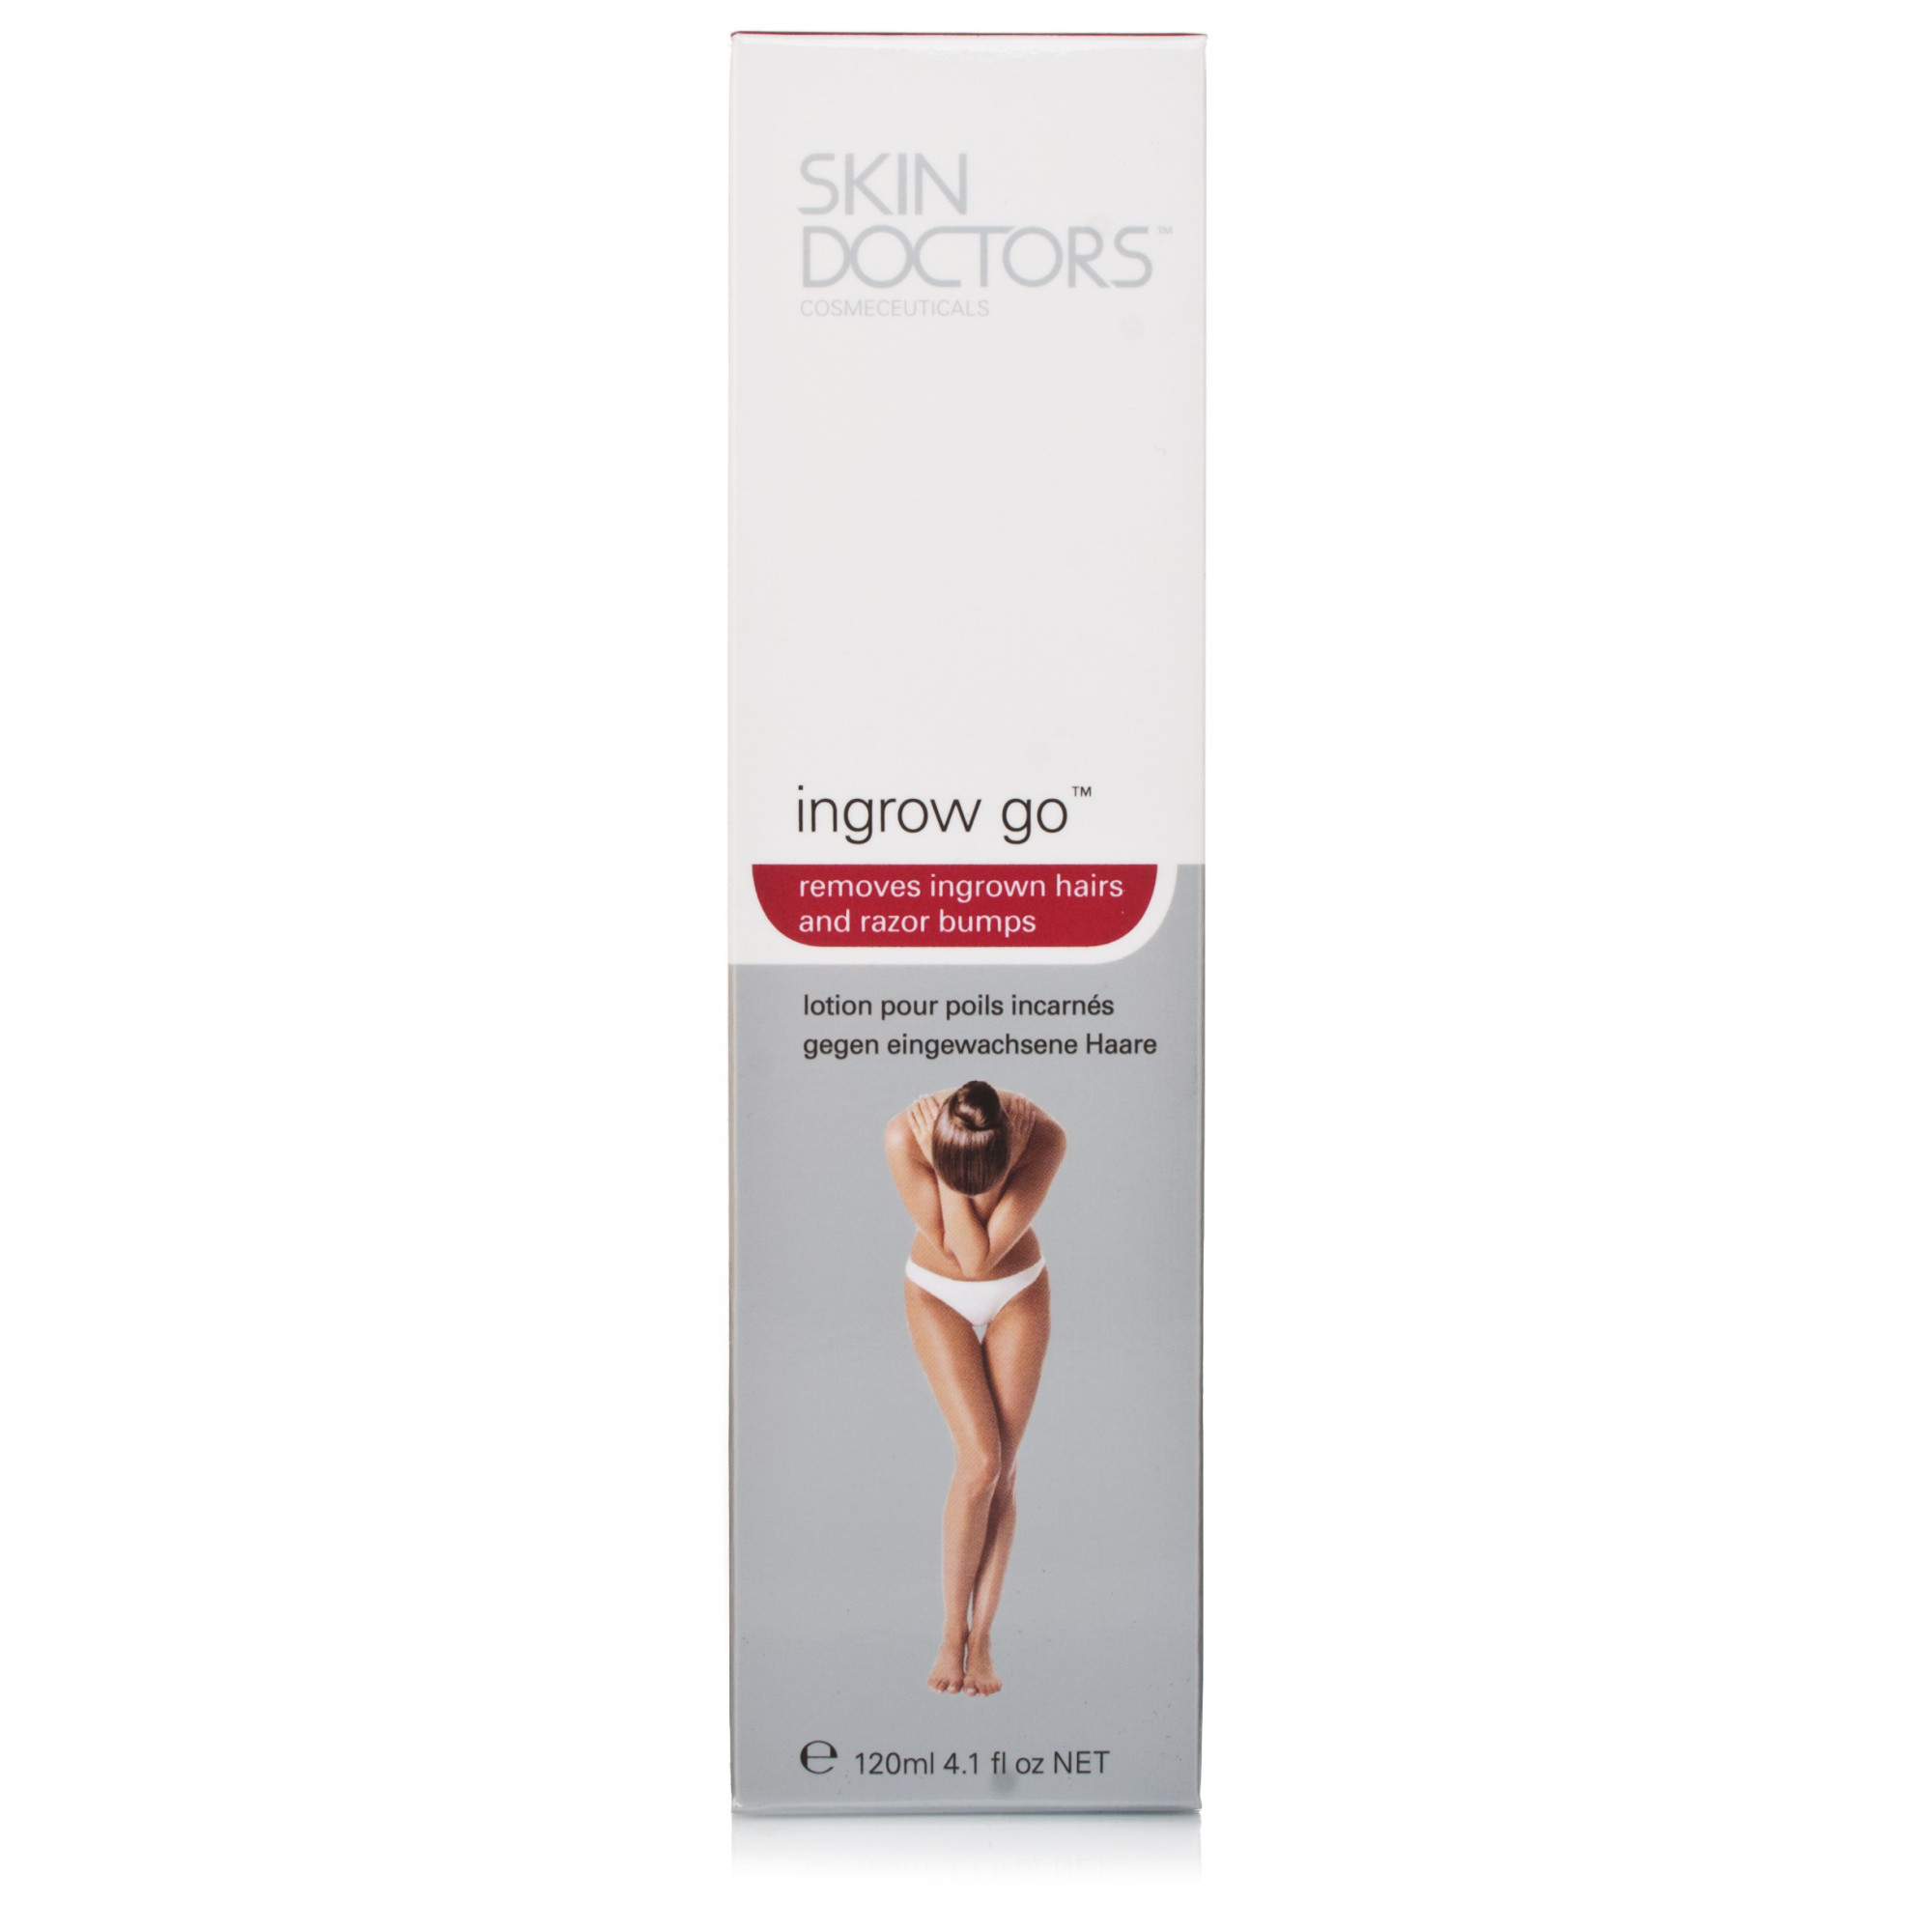 Skin Doctors Ingrow Go Lotion